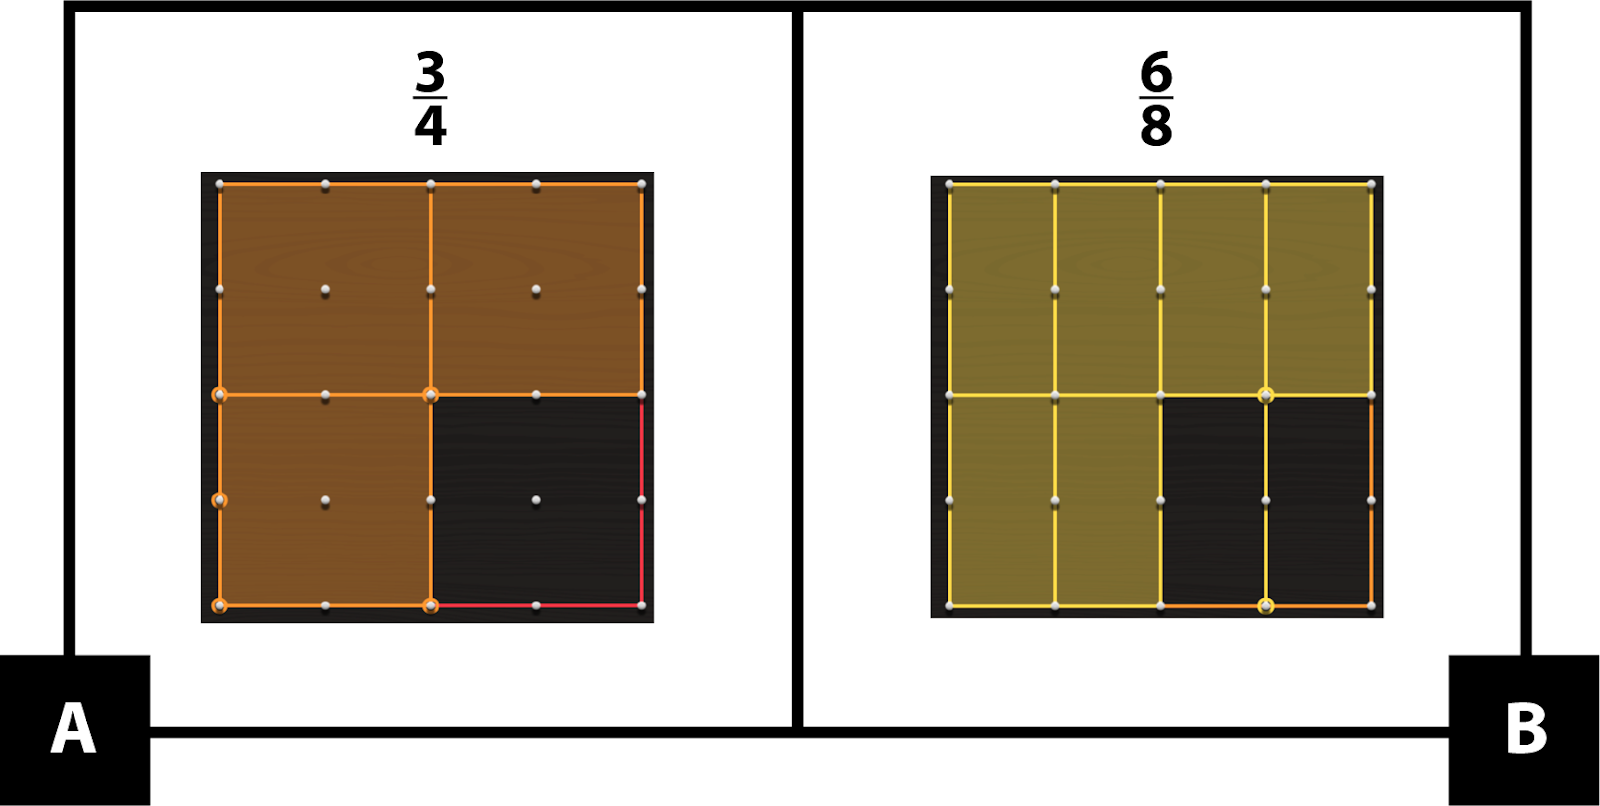 A: A geoboard shows 3 out of 4 equal parts shaded orange. 3-fourths. B: A geoboard shows 6 out of 8 equal parts shaded yellow. 6-eights. The number of shaded parts in A is less than the number of shaded parts in B, but they represent the same fraction.